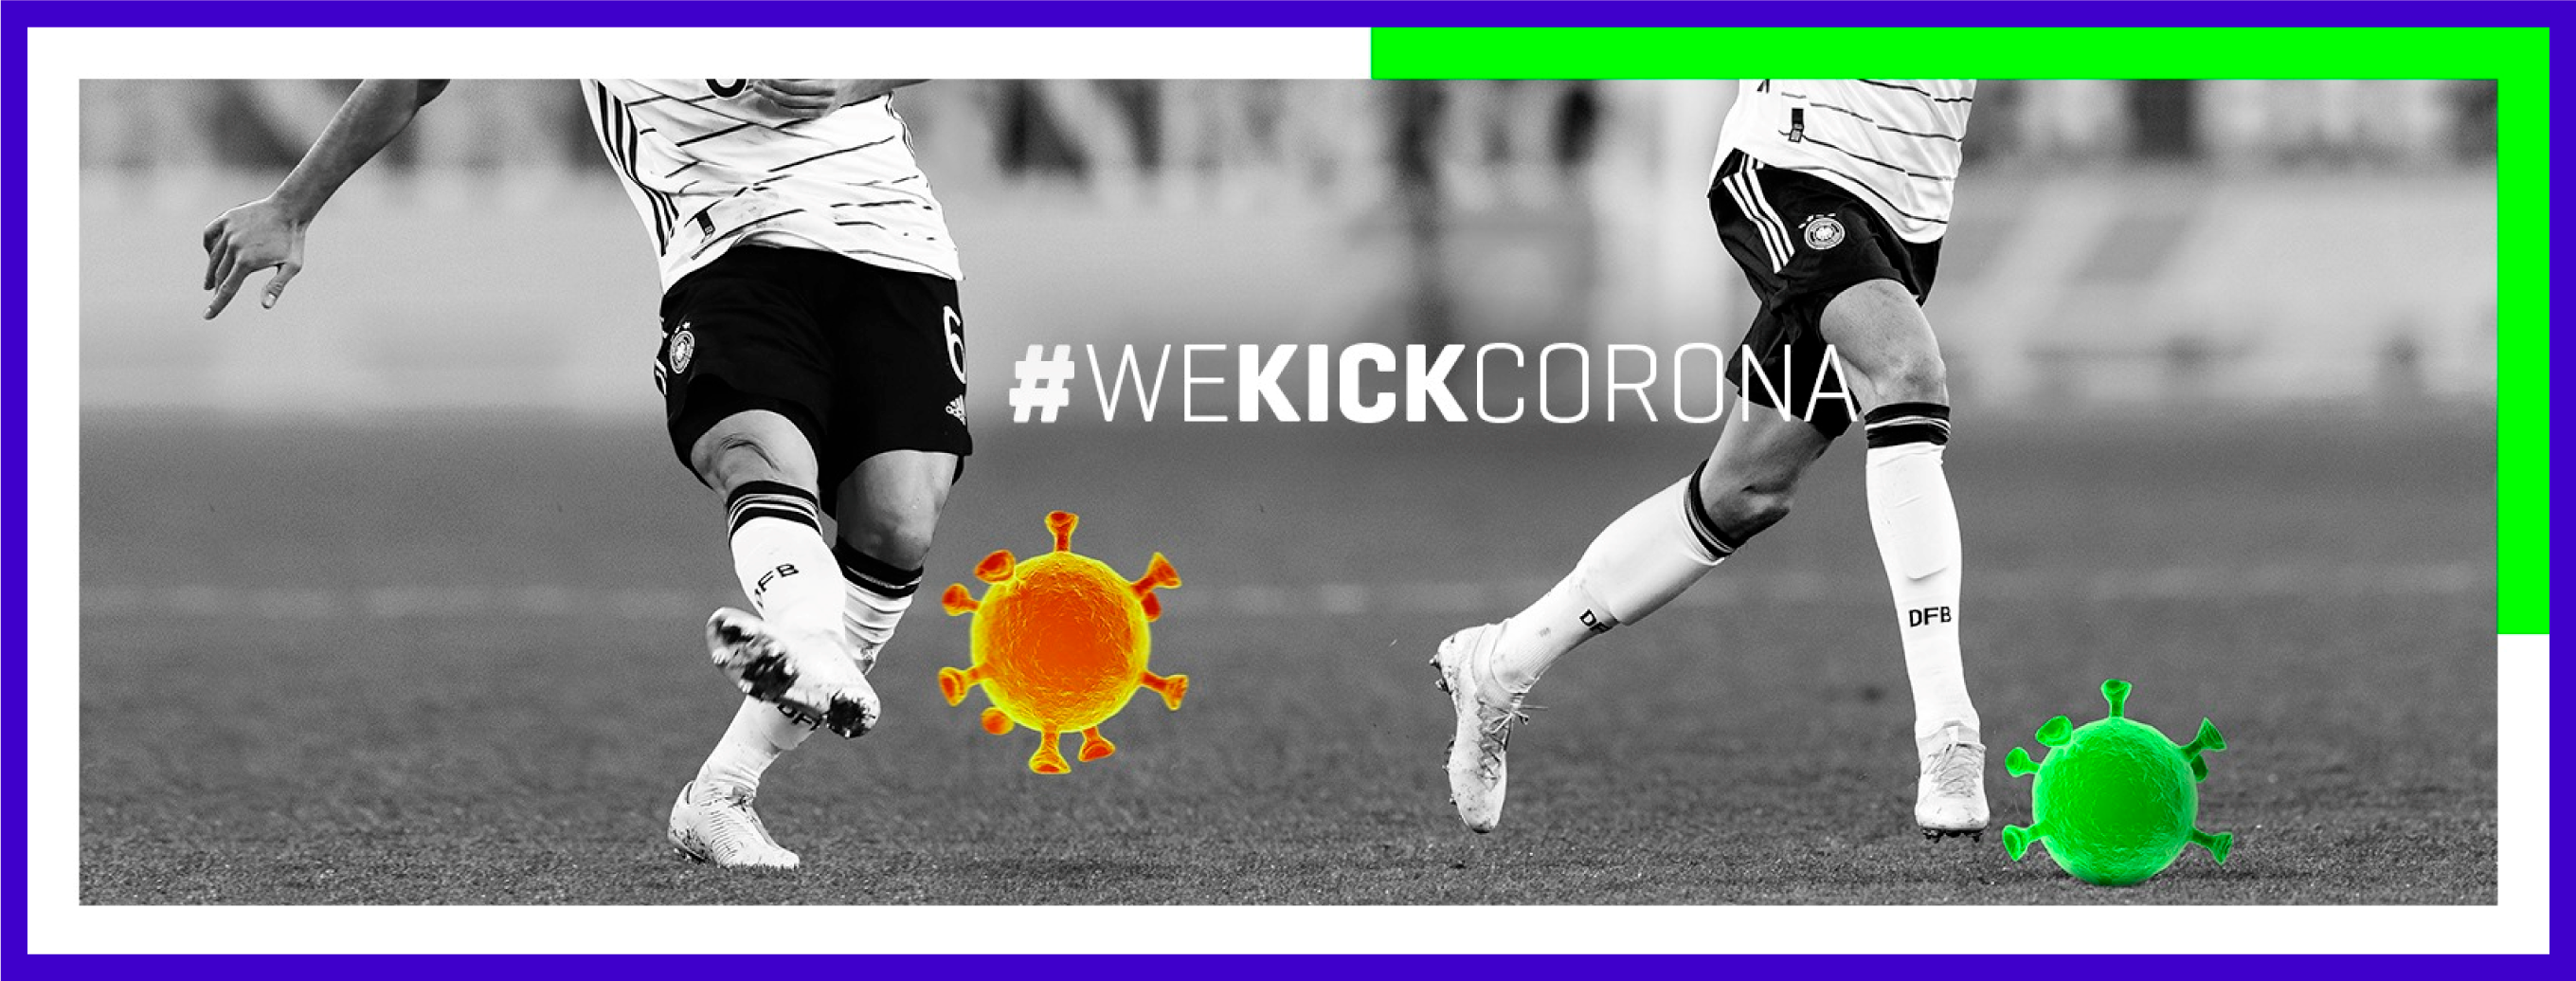 Bayern München's #WeKickCorona campaign founded by Joshua Kimmich and Leon Goretzka has already raised over 5 million euros for charity purposes